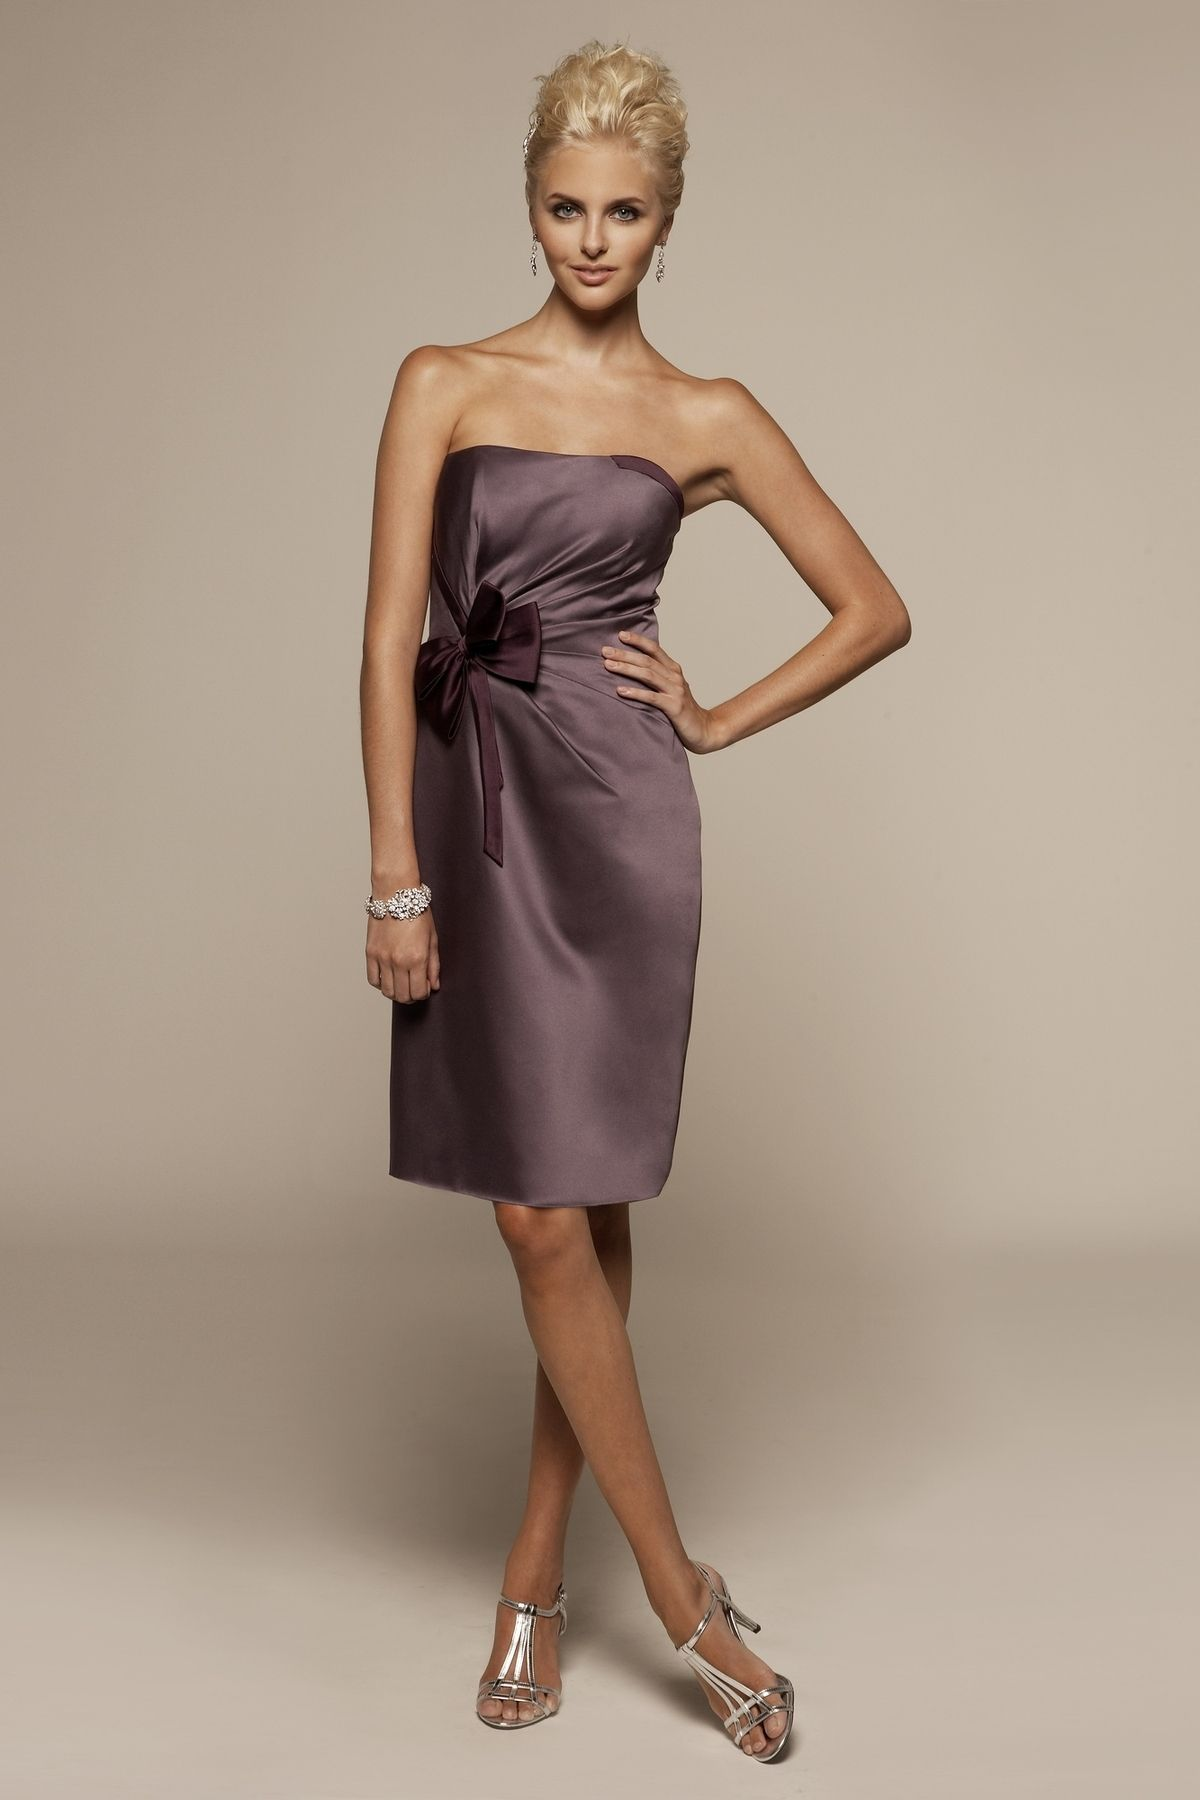 Strapless satin dress with natural style pinterest satin